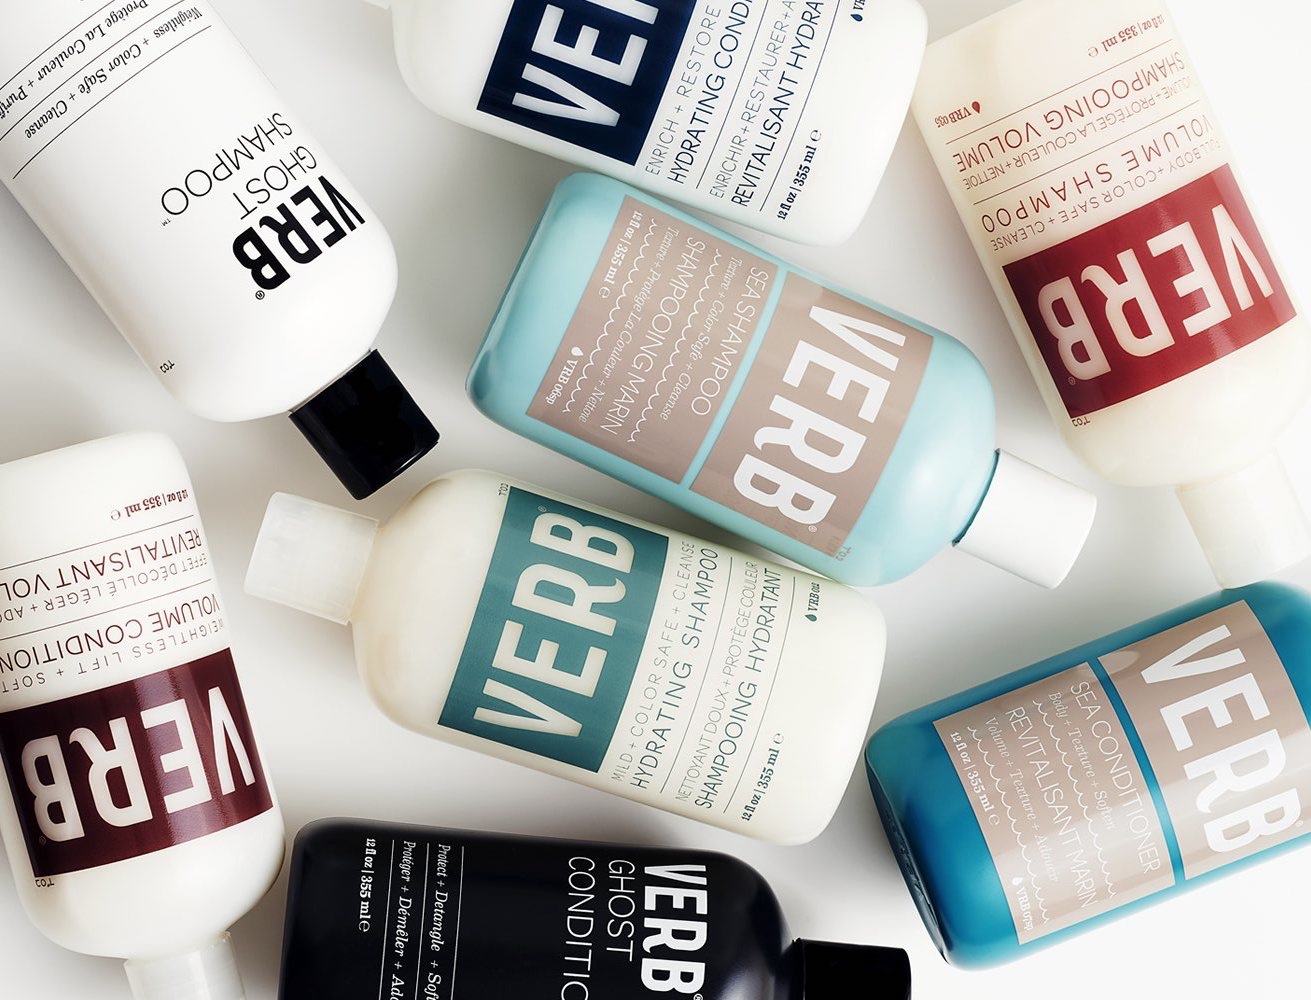 Verb (Re)Enters Ulta Beauty Ready For Action